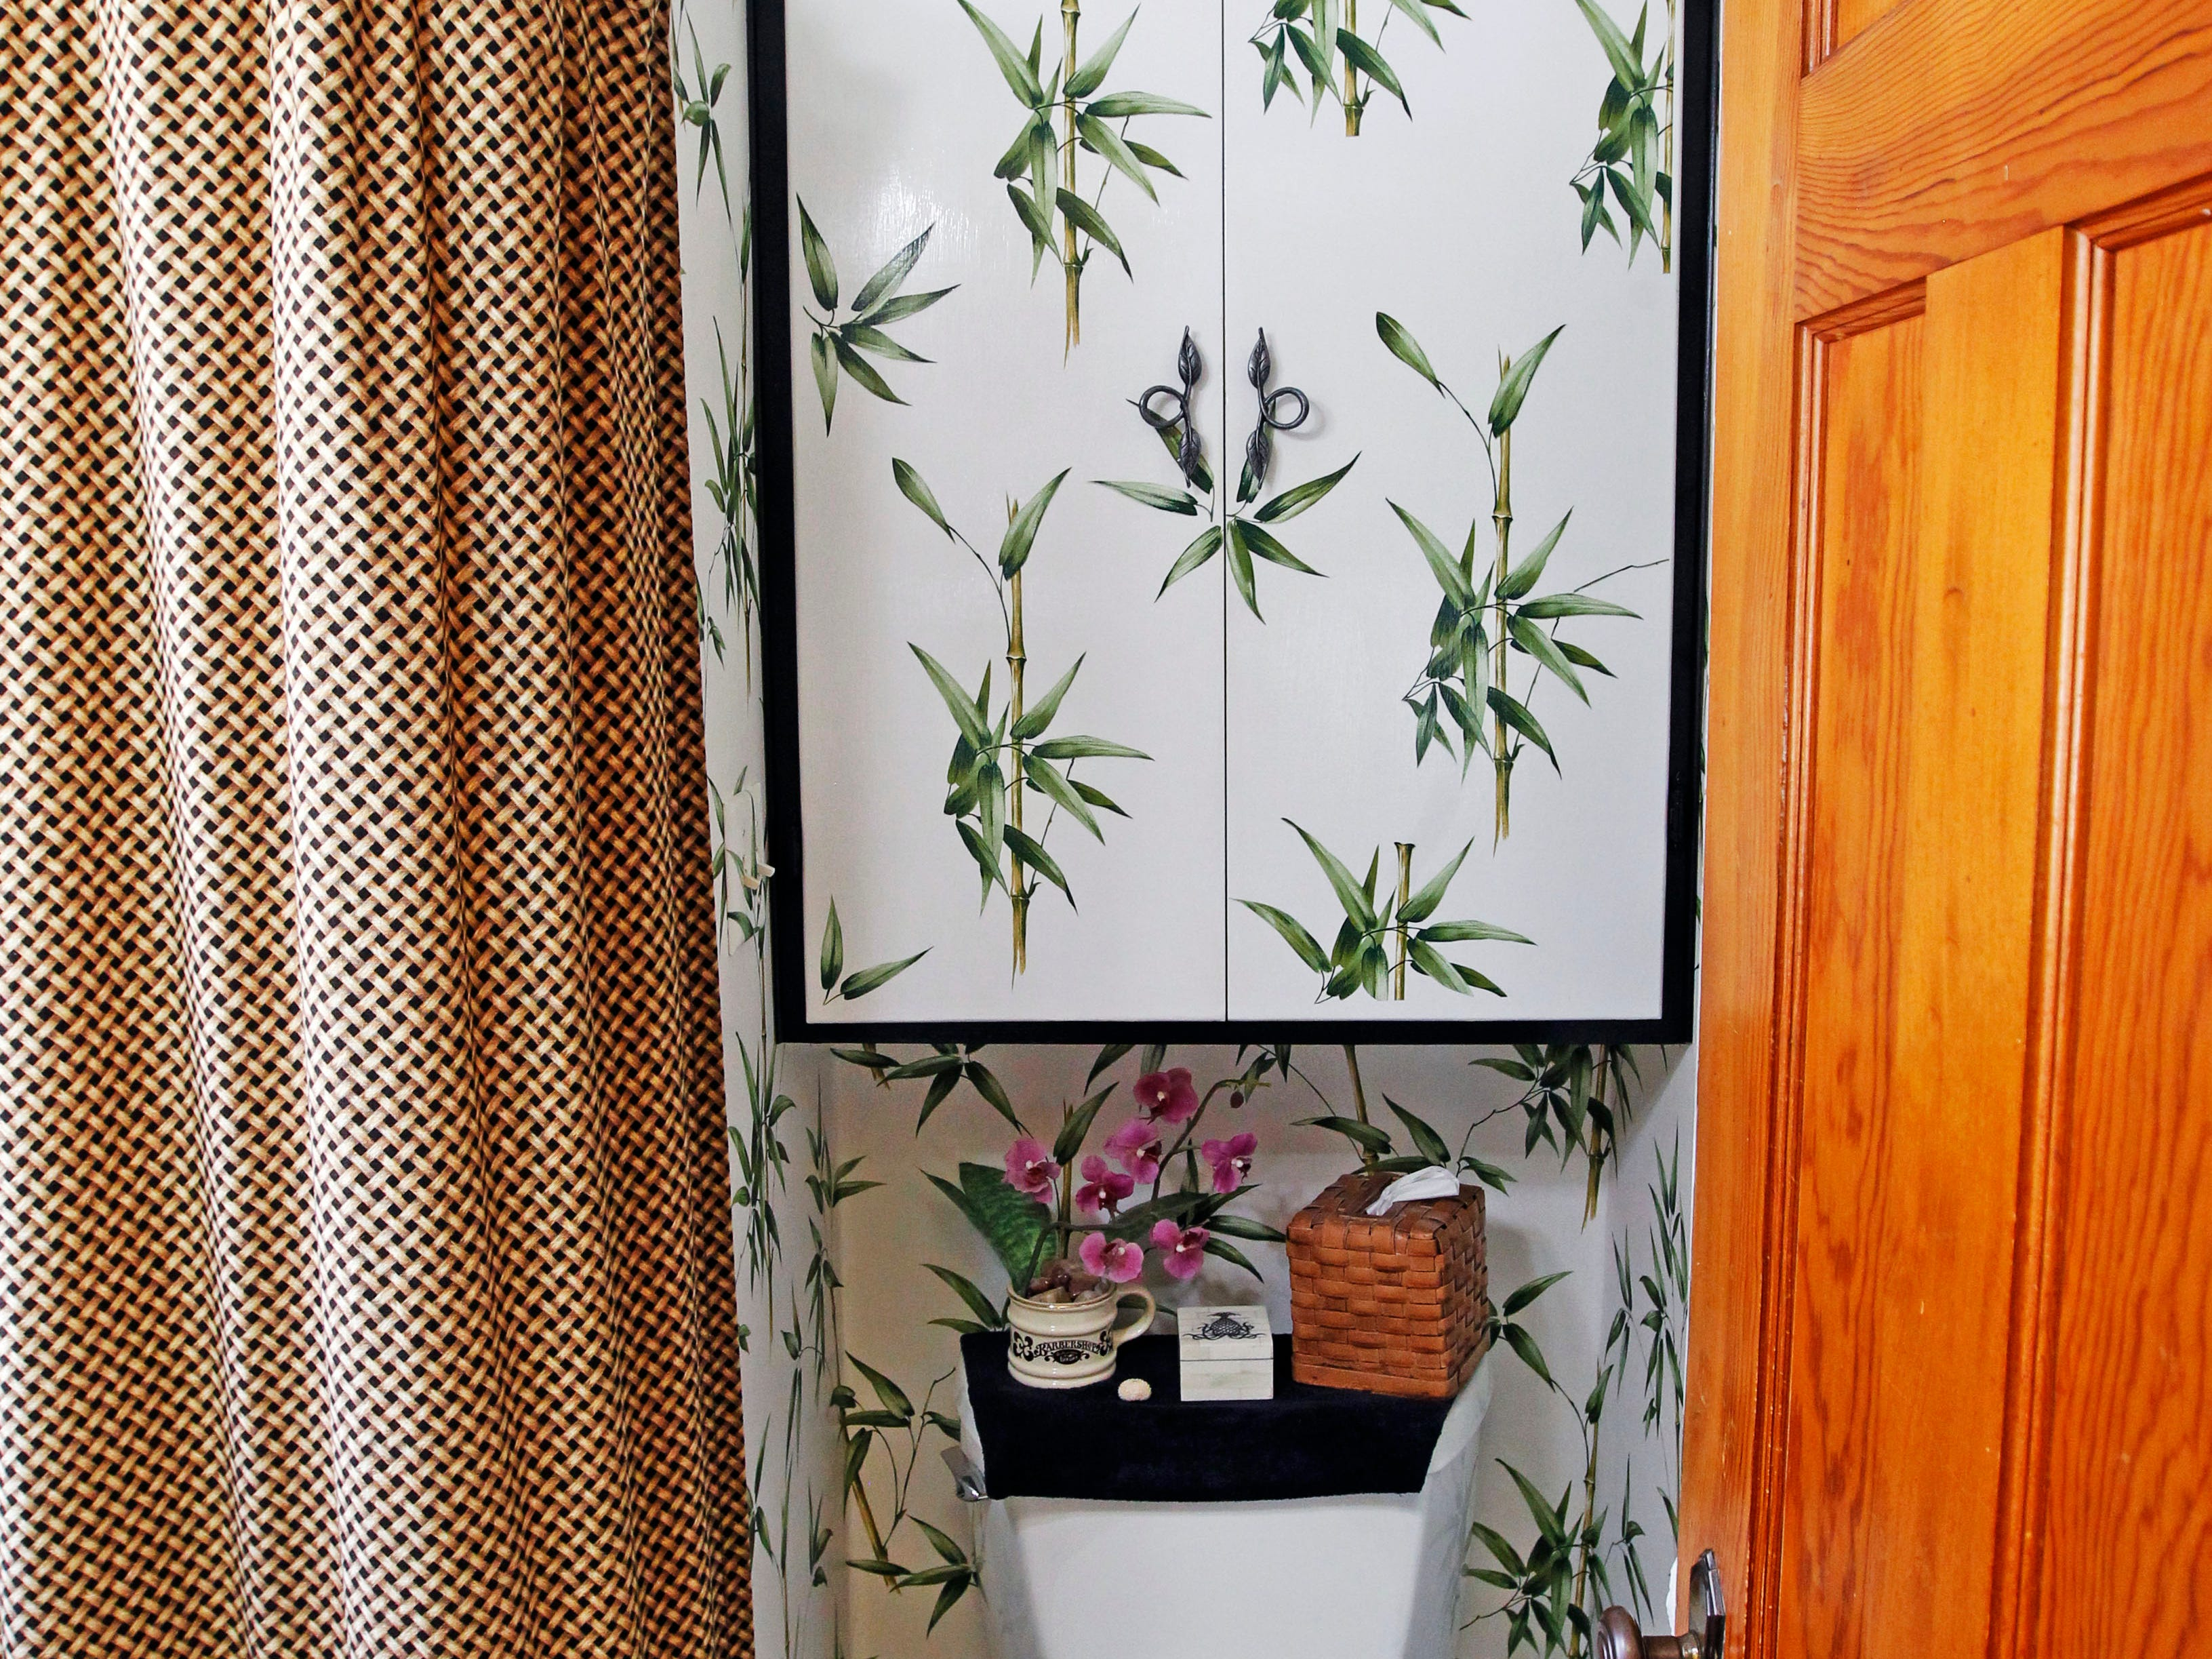 Bamboo print wallpaper accents the downstairs bathroom.